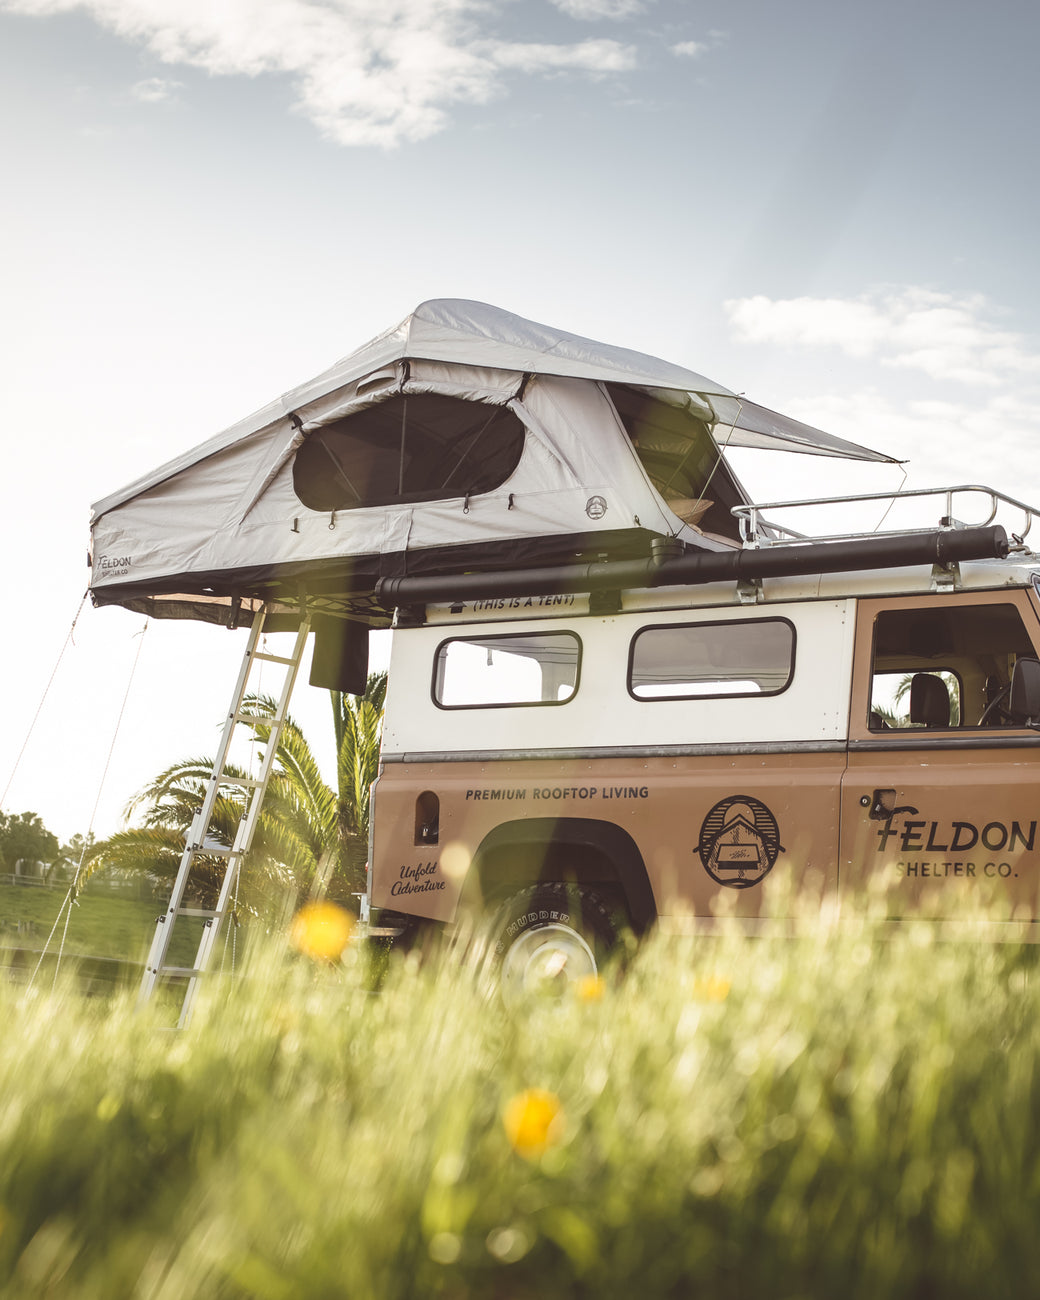 & Roof top Tent - The Crowu0027s Nest Extended Rooftop Tent | Feldon Shelter